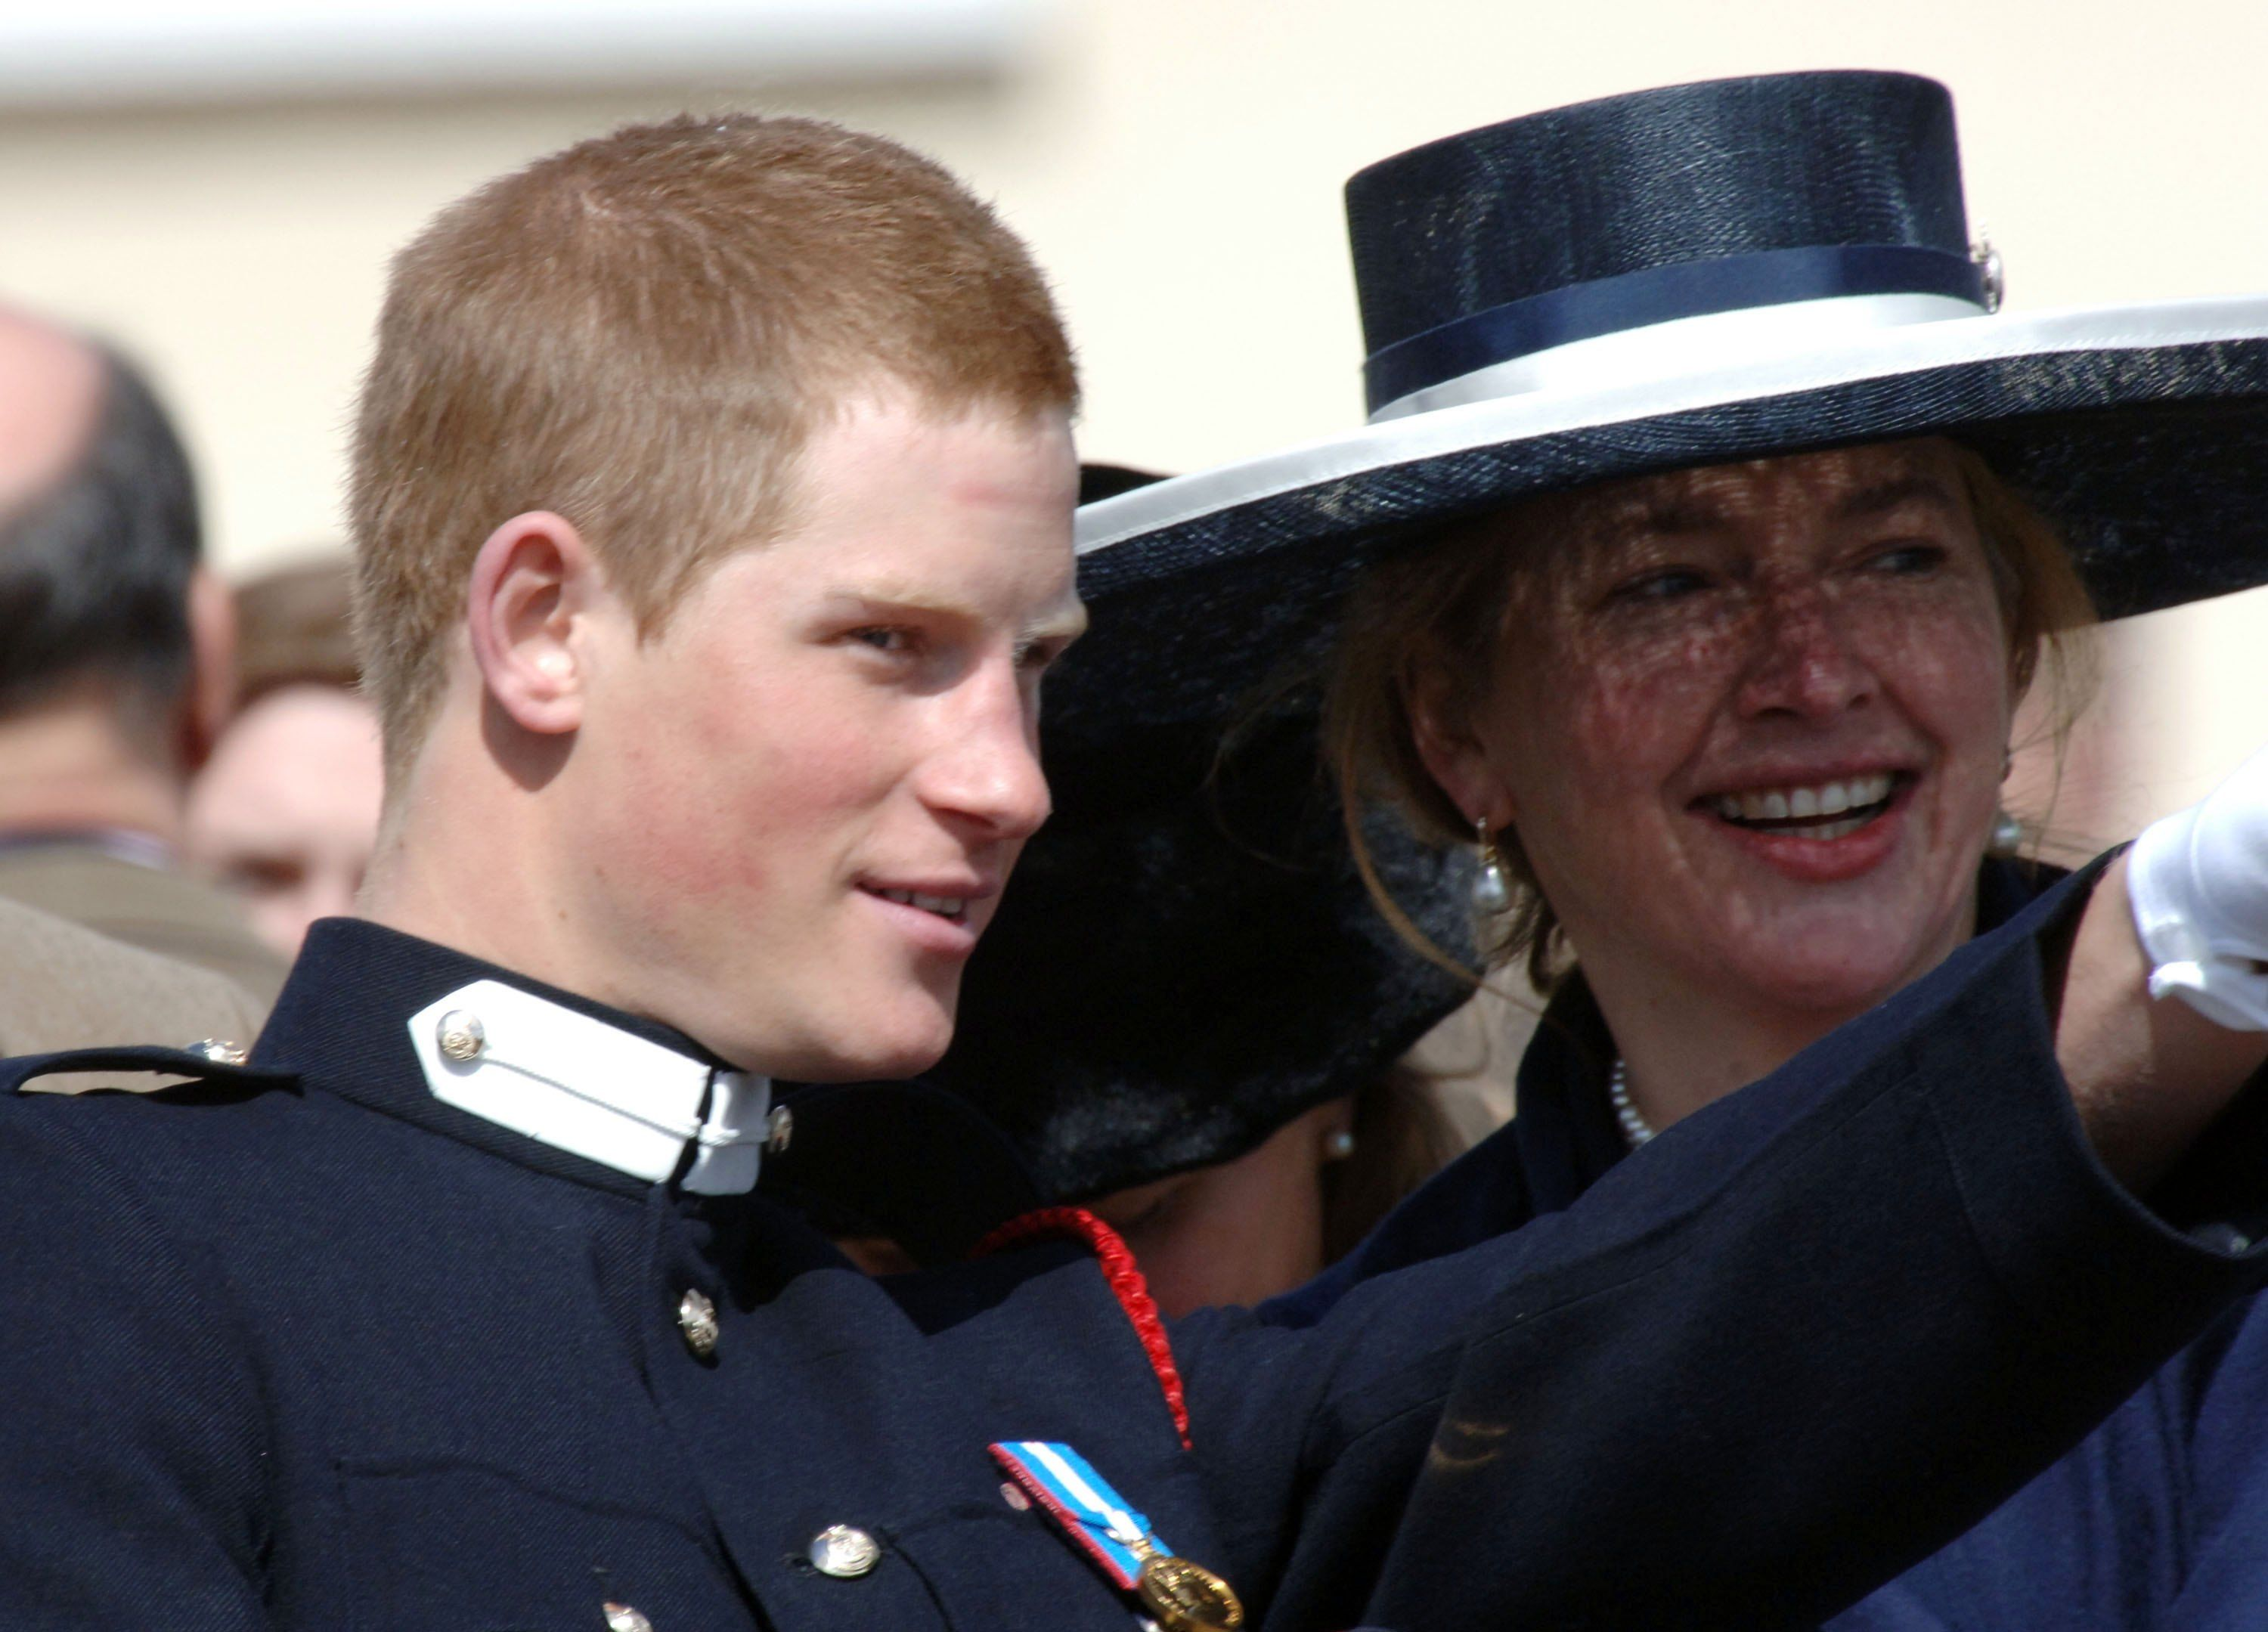 SANDHURST, ENGLAND - APRIL 12: Prince Harry talks to his former nanny Tiggy Legge-Bourke at his passing-out Sovereign's Parade at Sandhurst Military Academy on April 12, 2006 in Sandhurst, England.   Foto von: Anwar Hussein/Getty Images